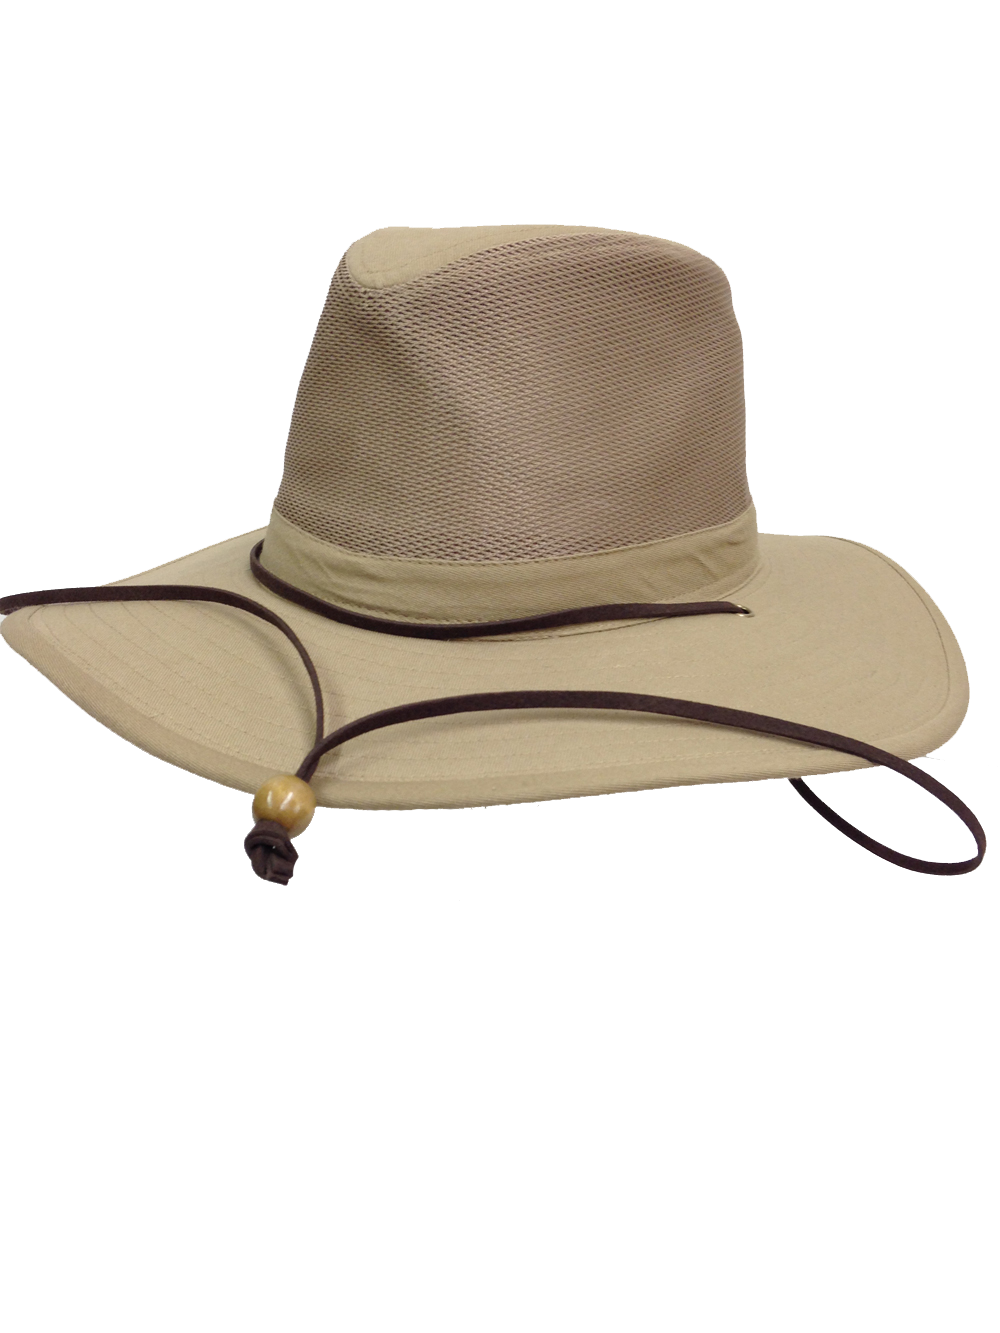 ace6f64a9e8 Natural and Neutral Hats Adult Canvas Safari Mesh Crown Hat